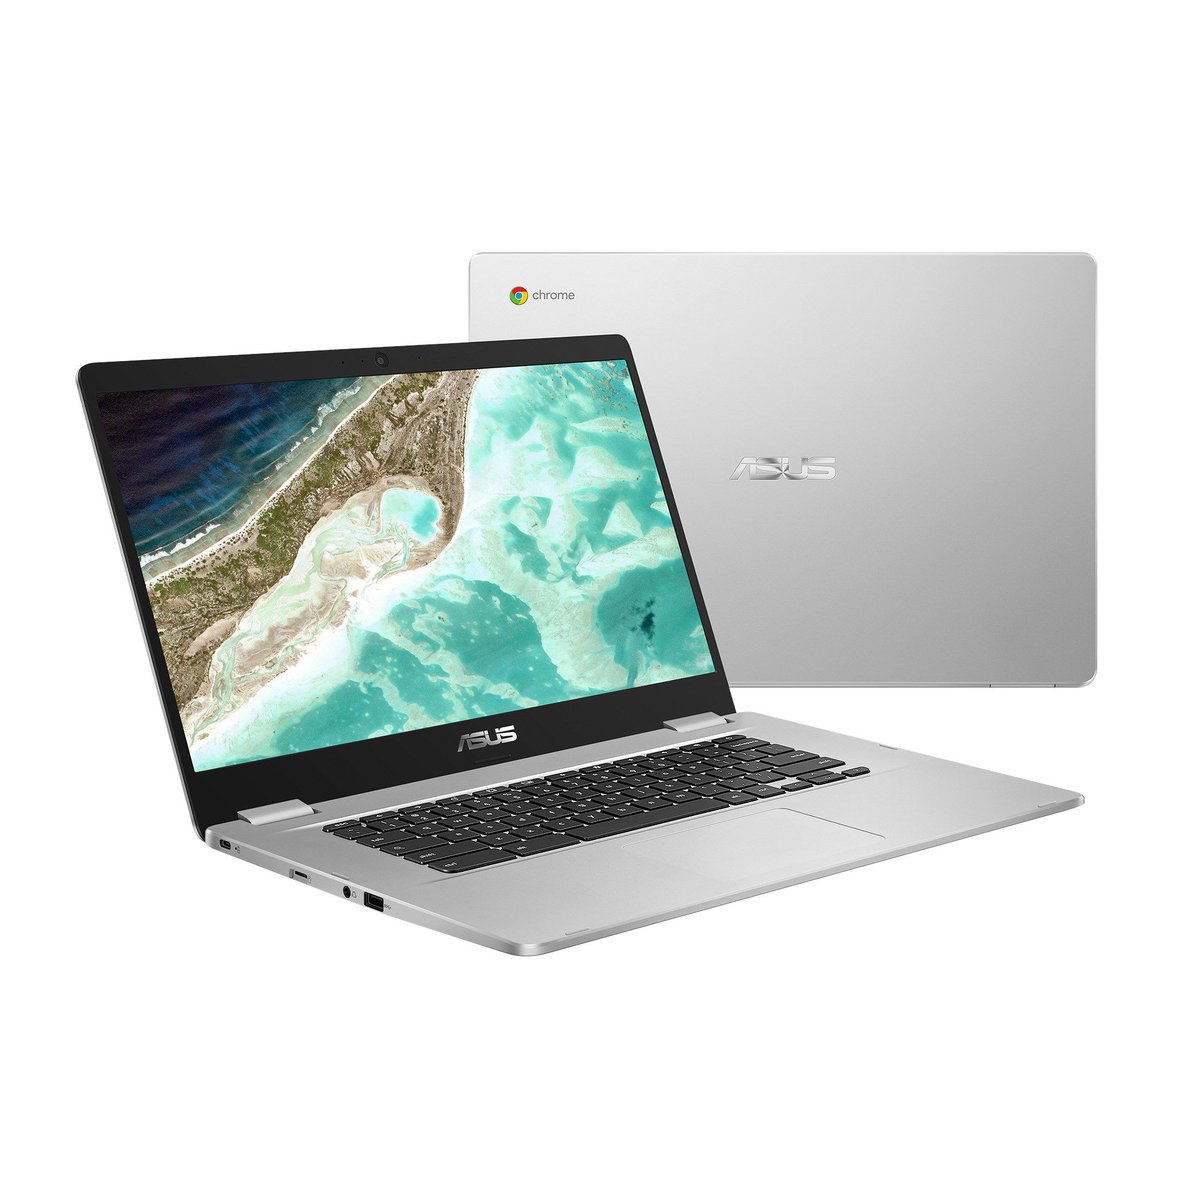 Asus will soon launch its first 15-inch Chromebook